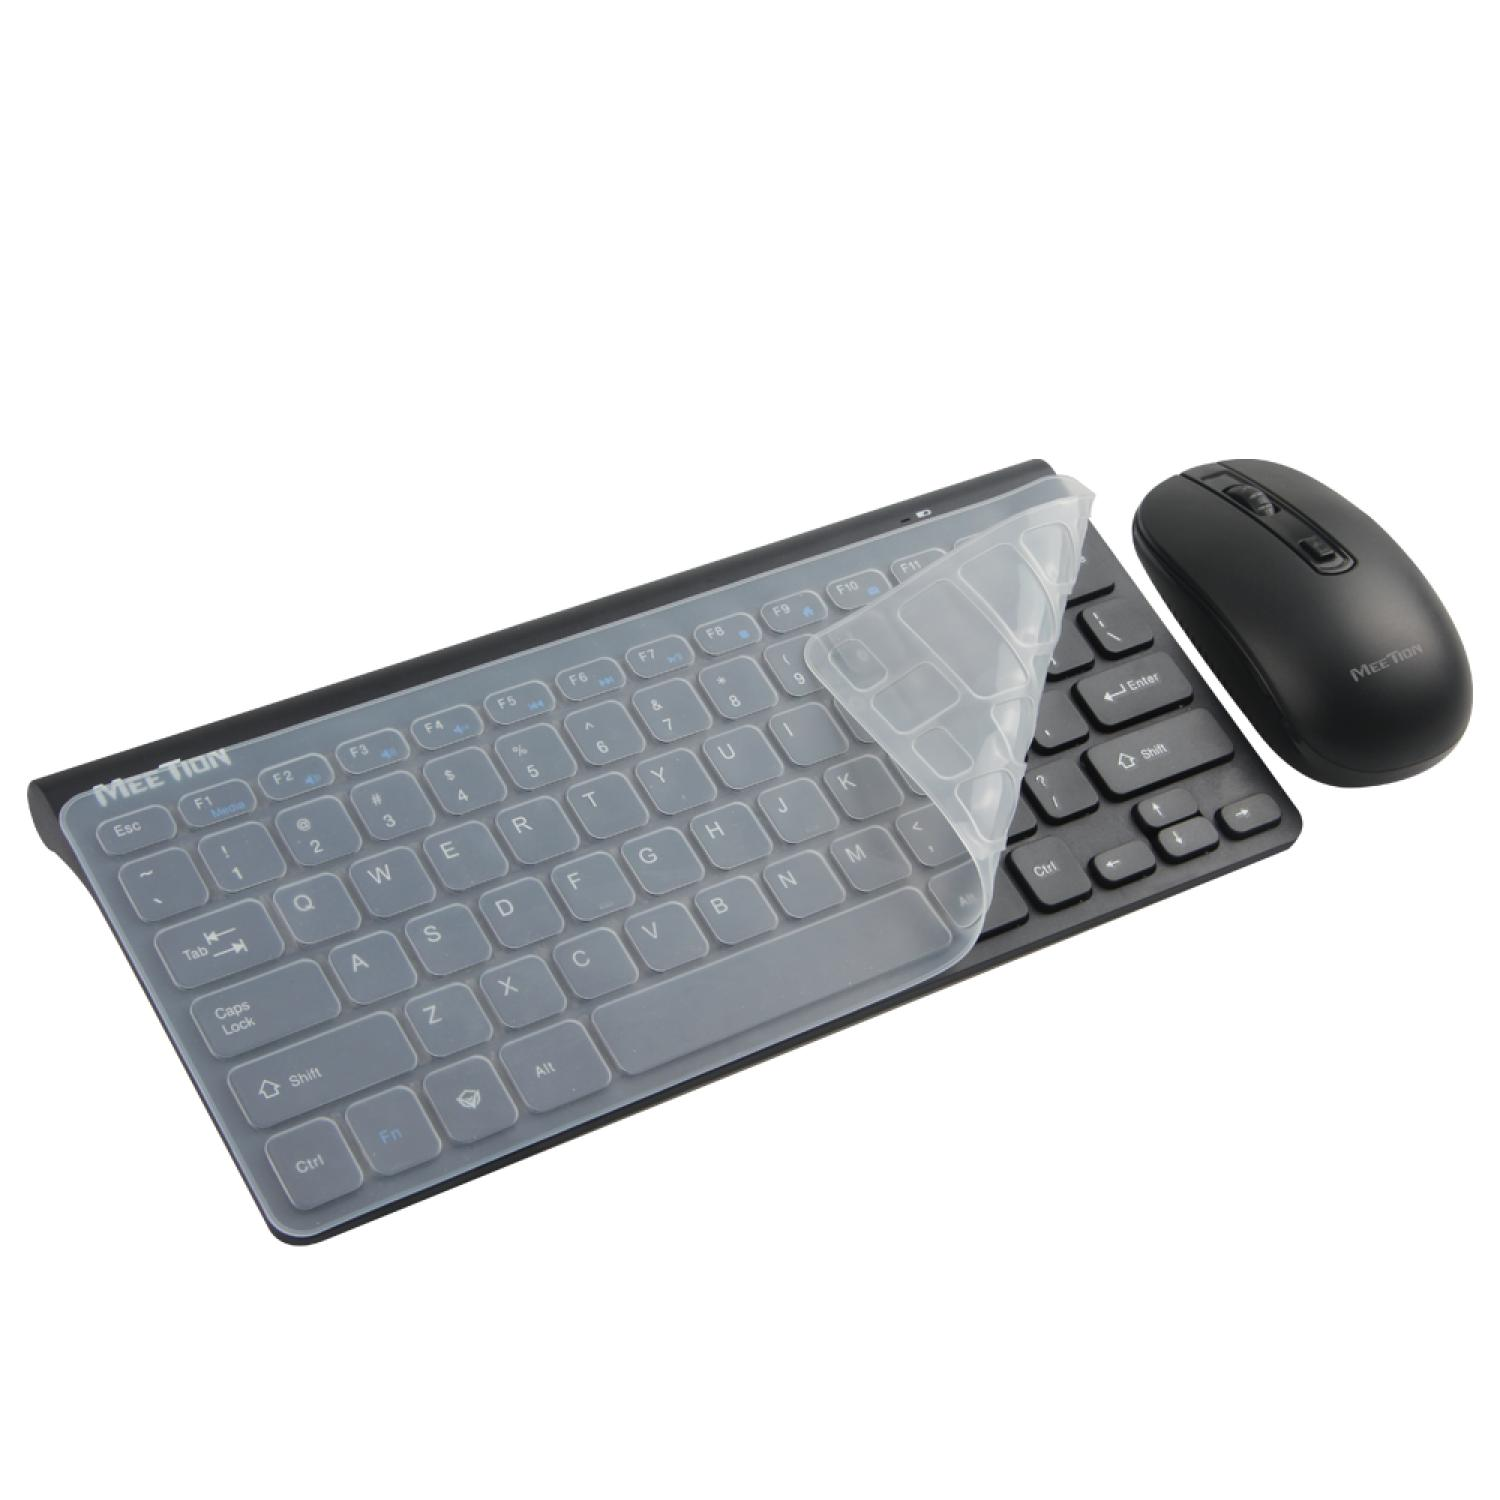 Computer Keyboards For Sale Pc Prices Brands Specs In Keyboard Mini Multimedia K 1000 Philippines